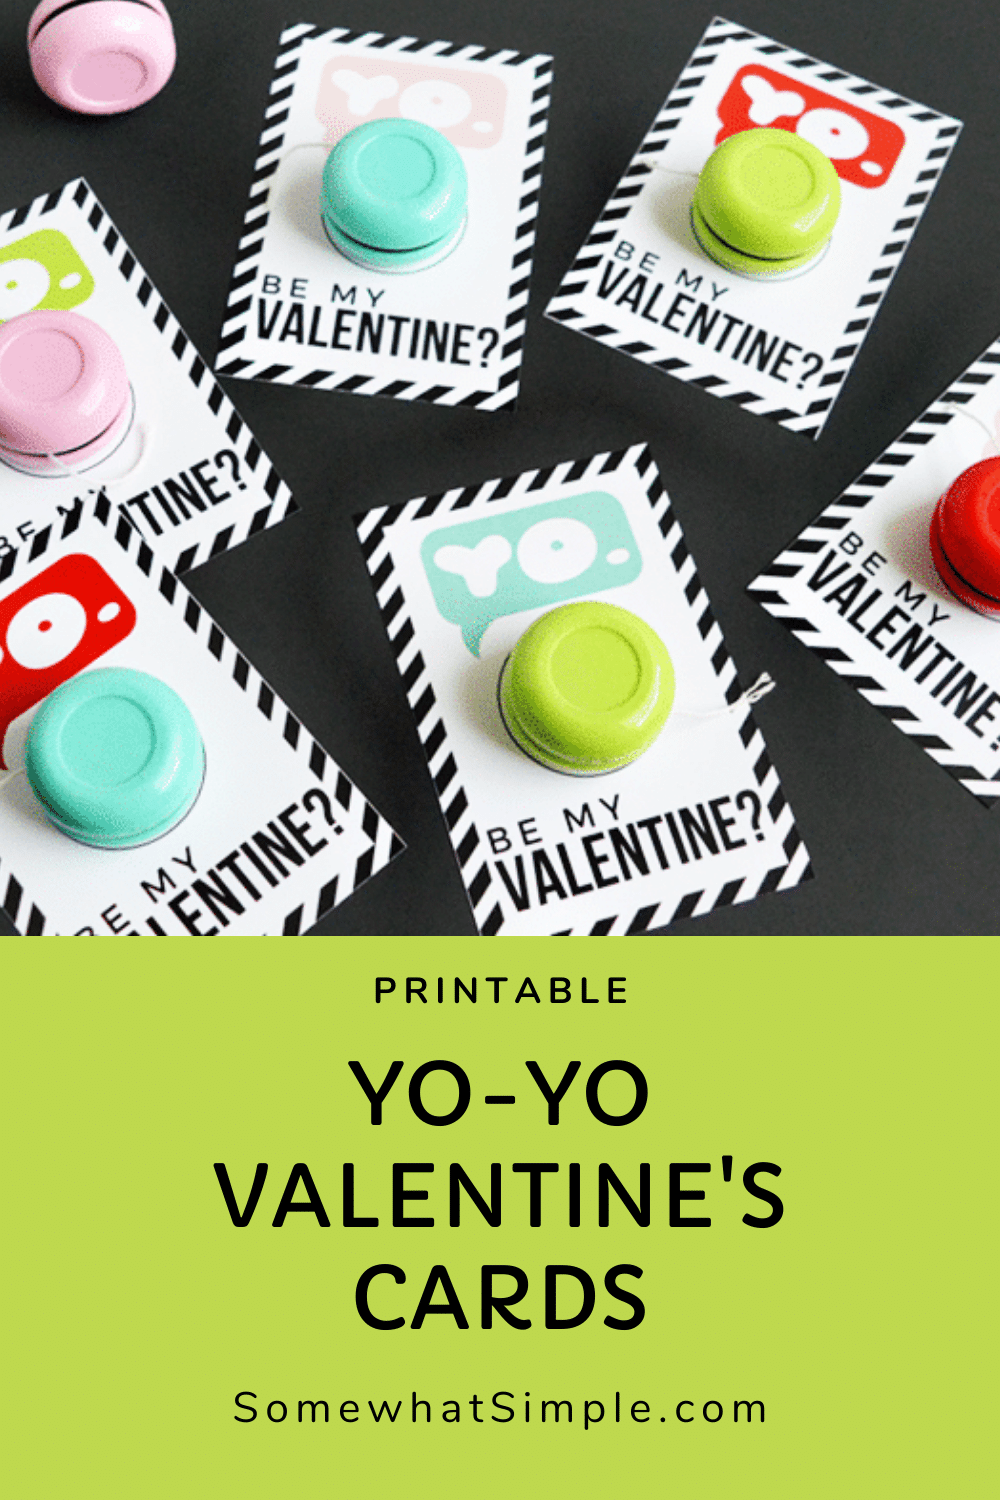 We're all about keeping things cute + simple around here, and theseYo-Yo Valentines Printables do just that! The Valentine's Day printable cards are perfect and unique and the kids will absolutely love them. If you want to skip the candy this year and do something fun, these cards are exactly what you're looking for. via @somewhatsimple